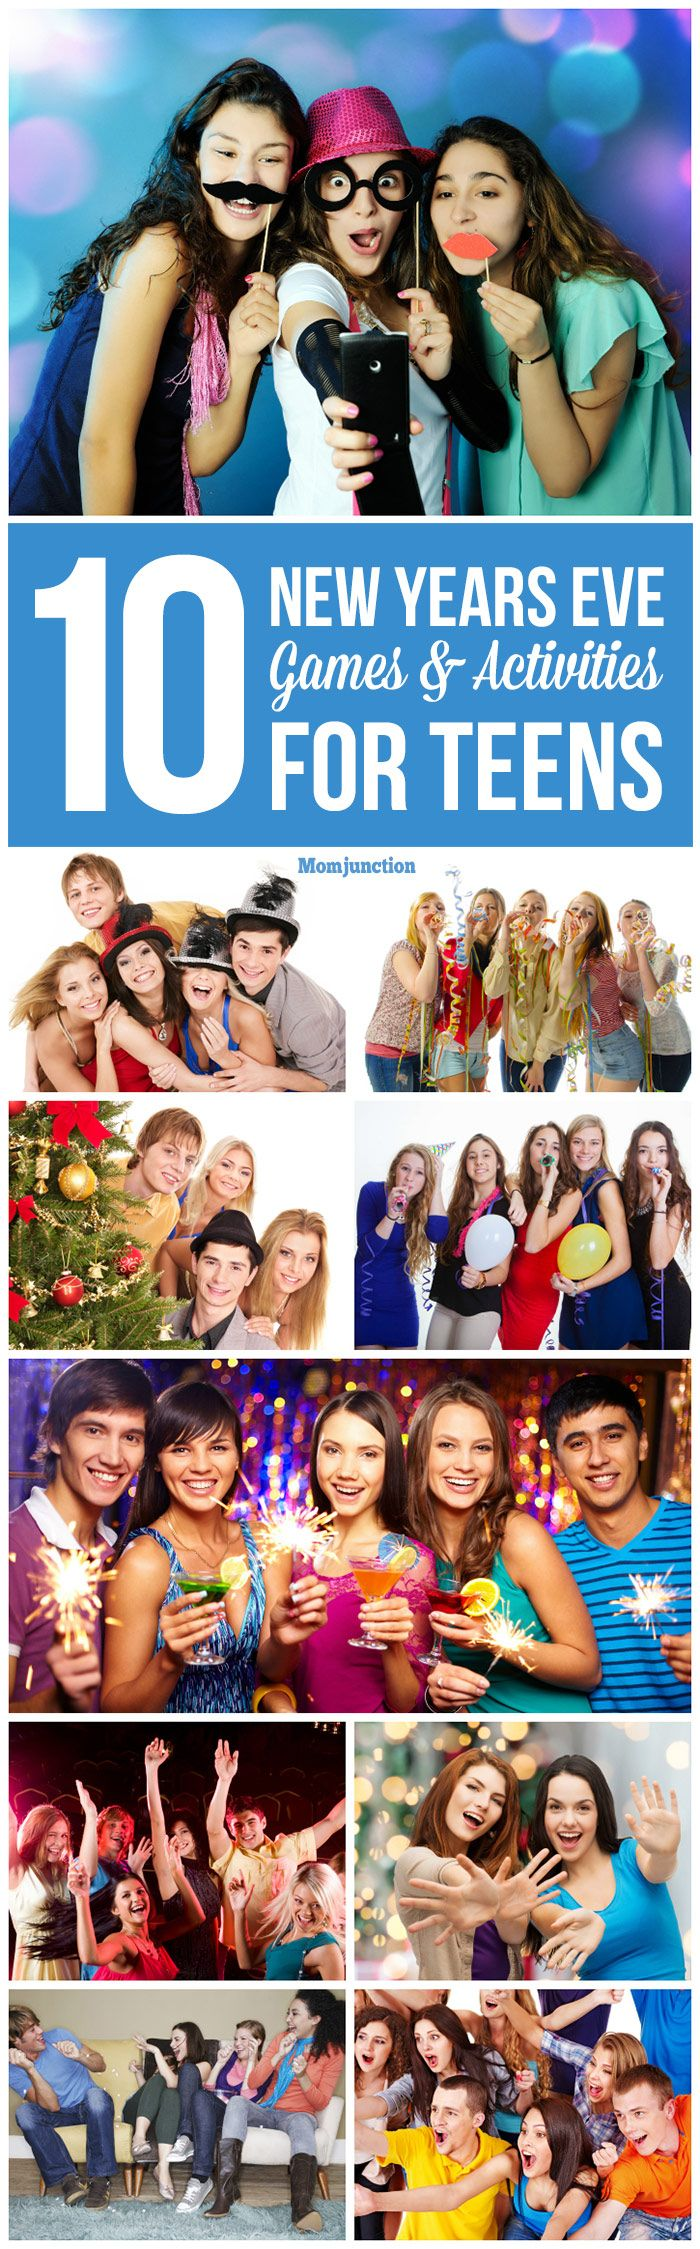 Teen new years eve recipes